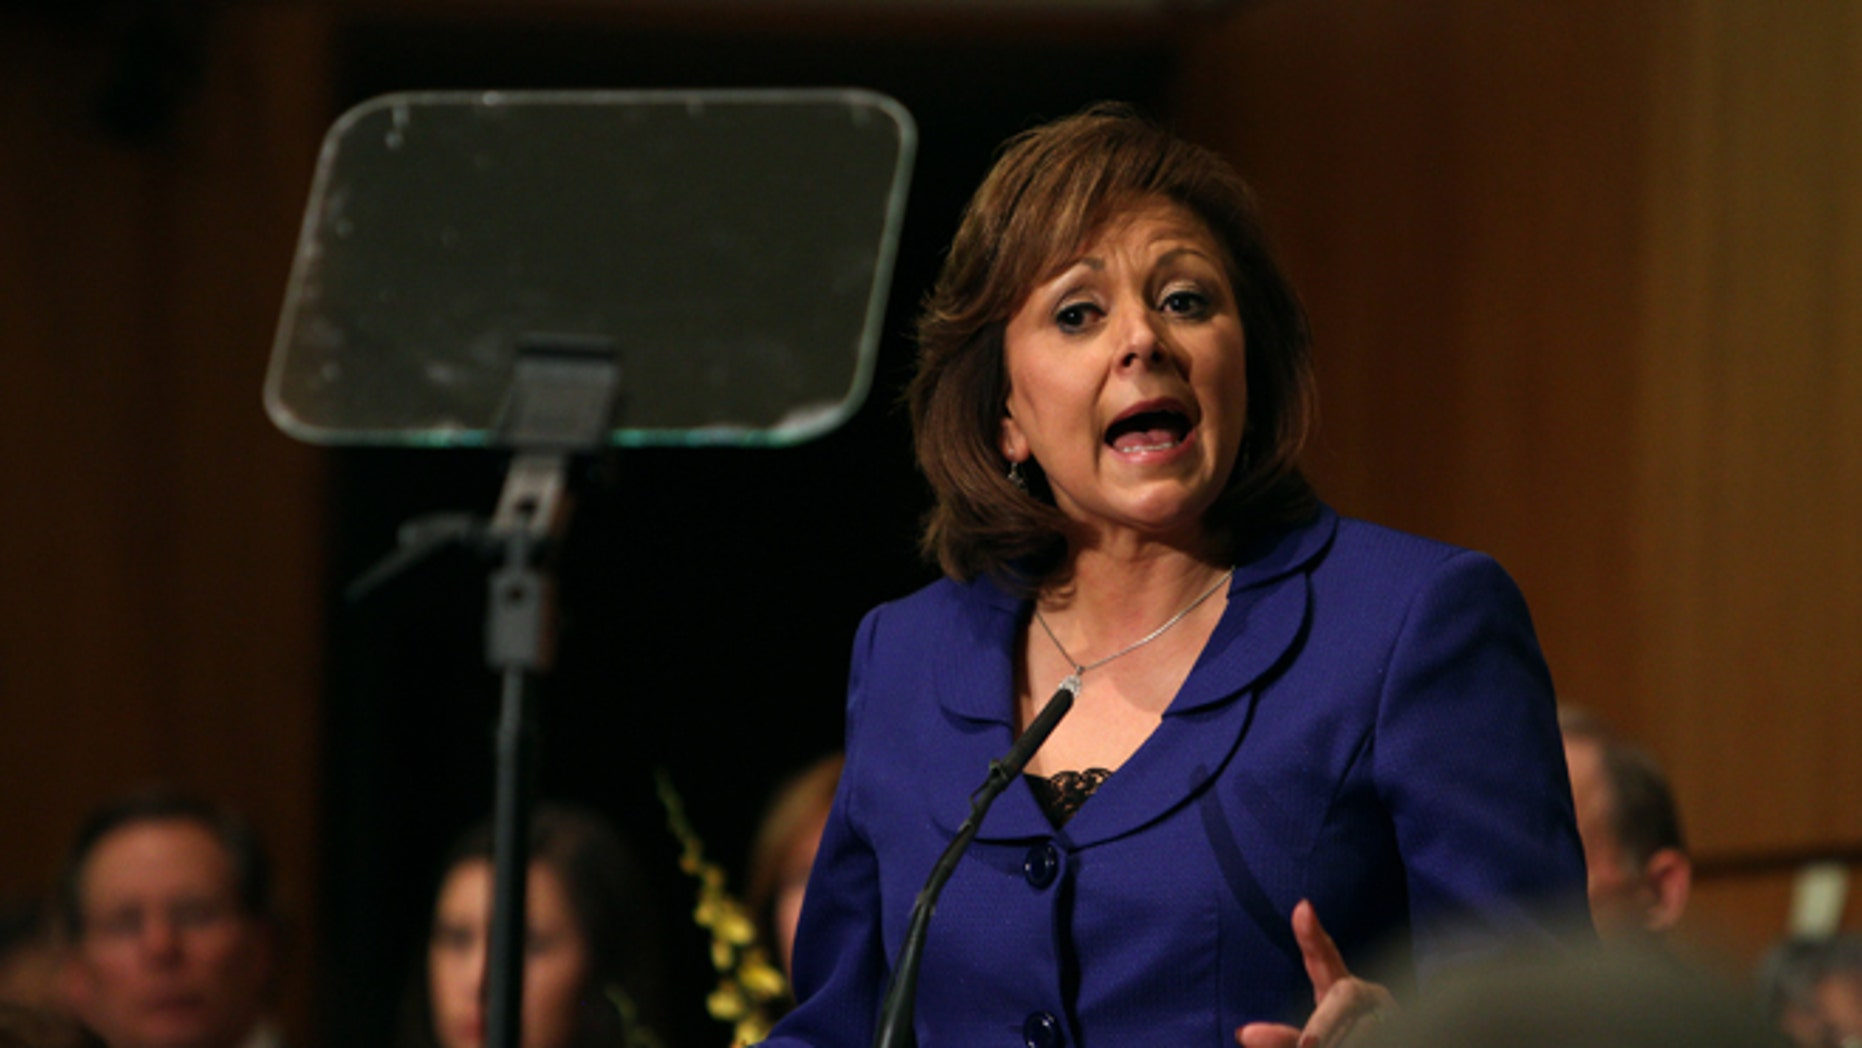 New Mexico Gov. Susana Martinez gives her State of the State address at the state Capitol, Tuesday, Jan 19, 2016, in Santa Fe, N.M. (AP Photo/Mark Holm)